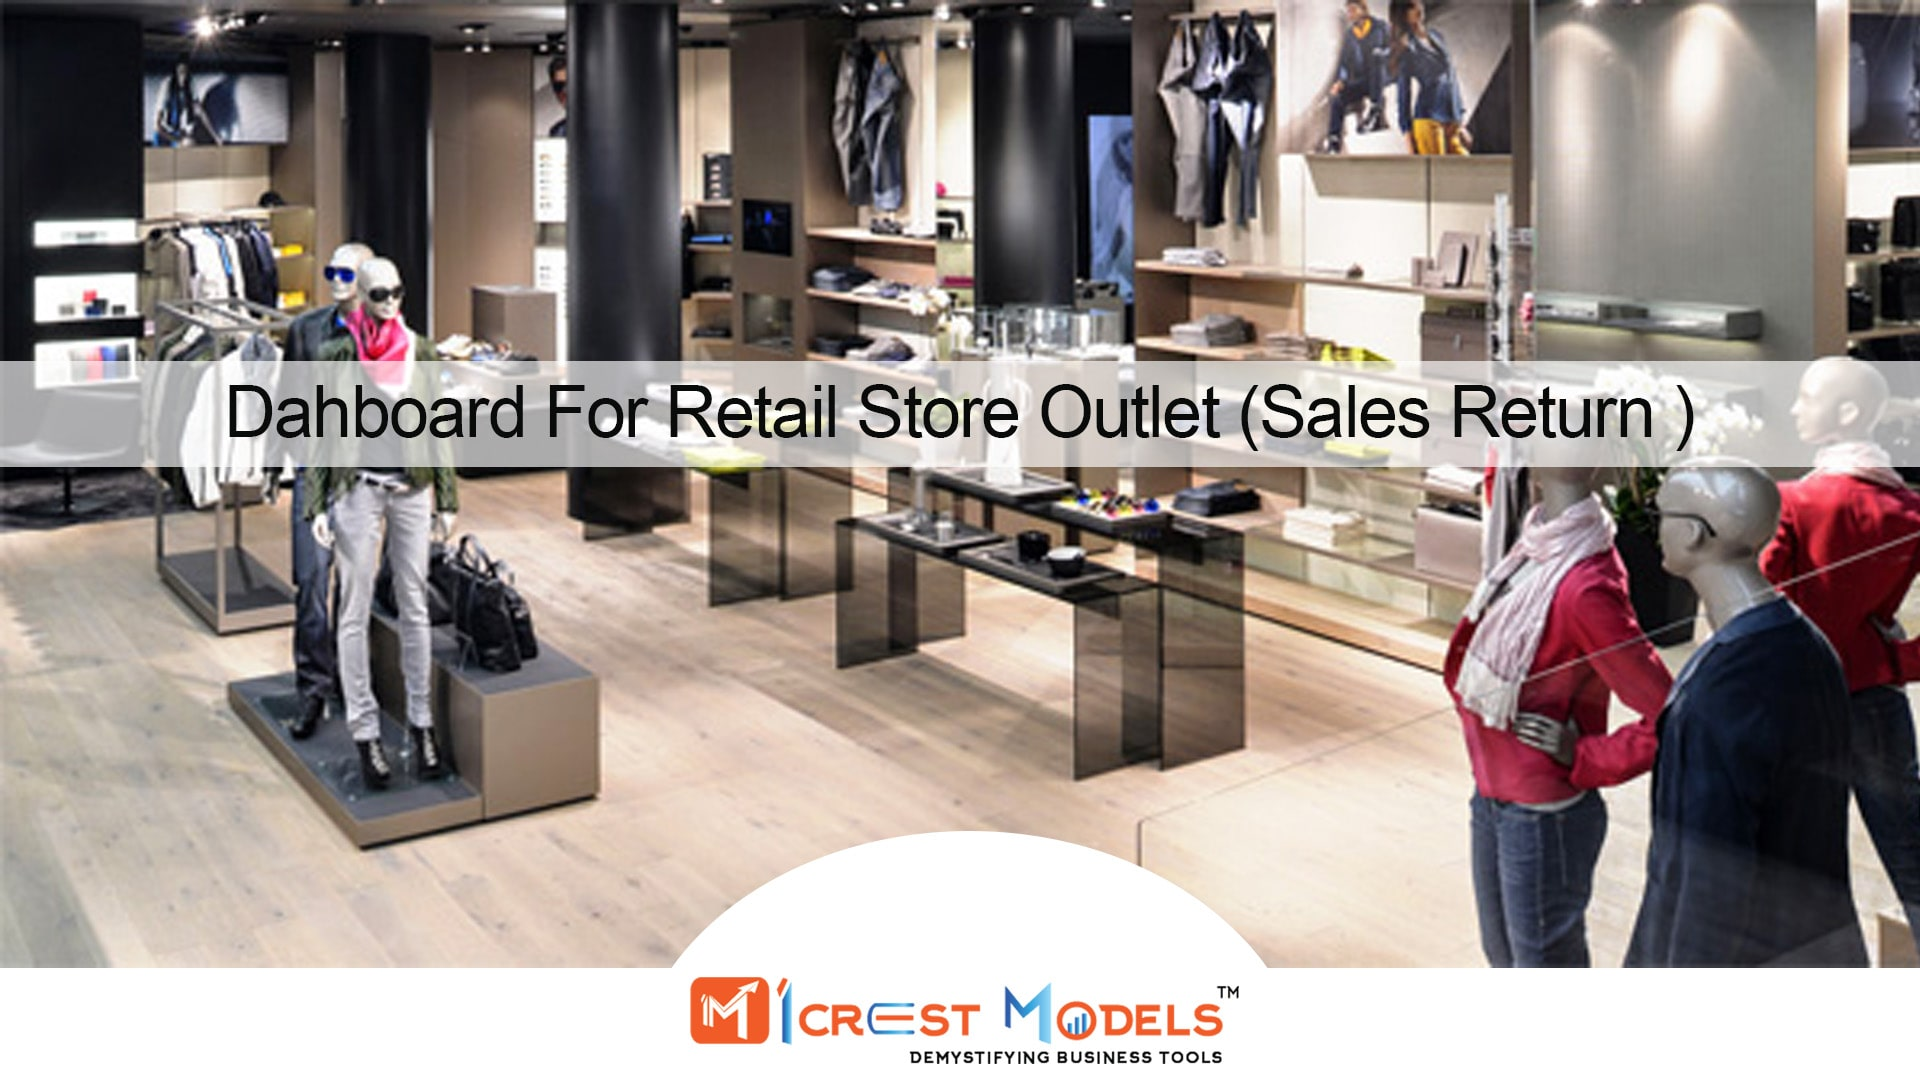 Dashboard For Retail Store Outlet (Sales Return)